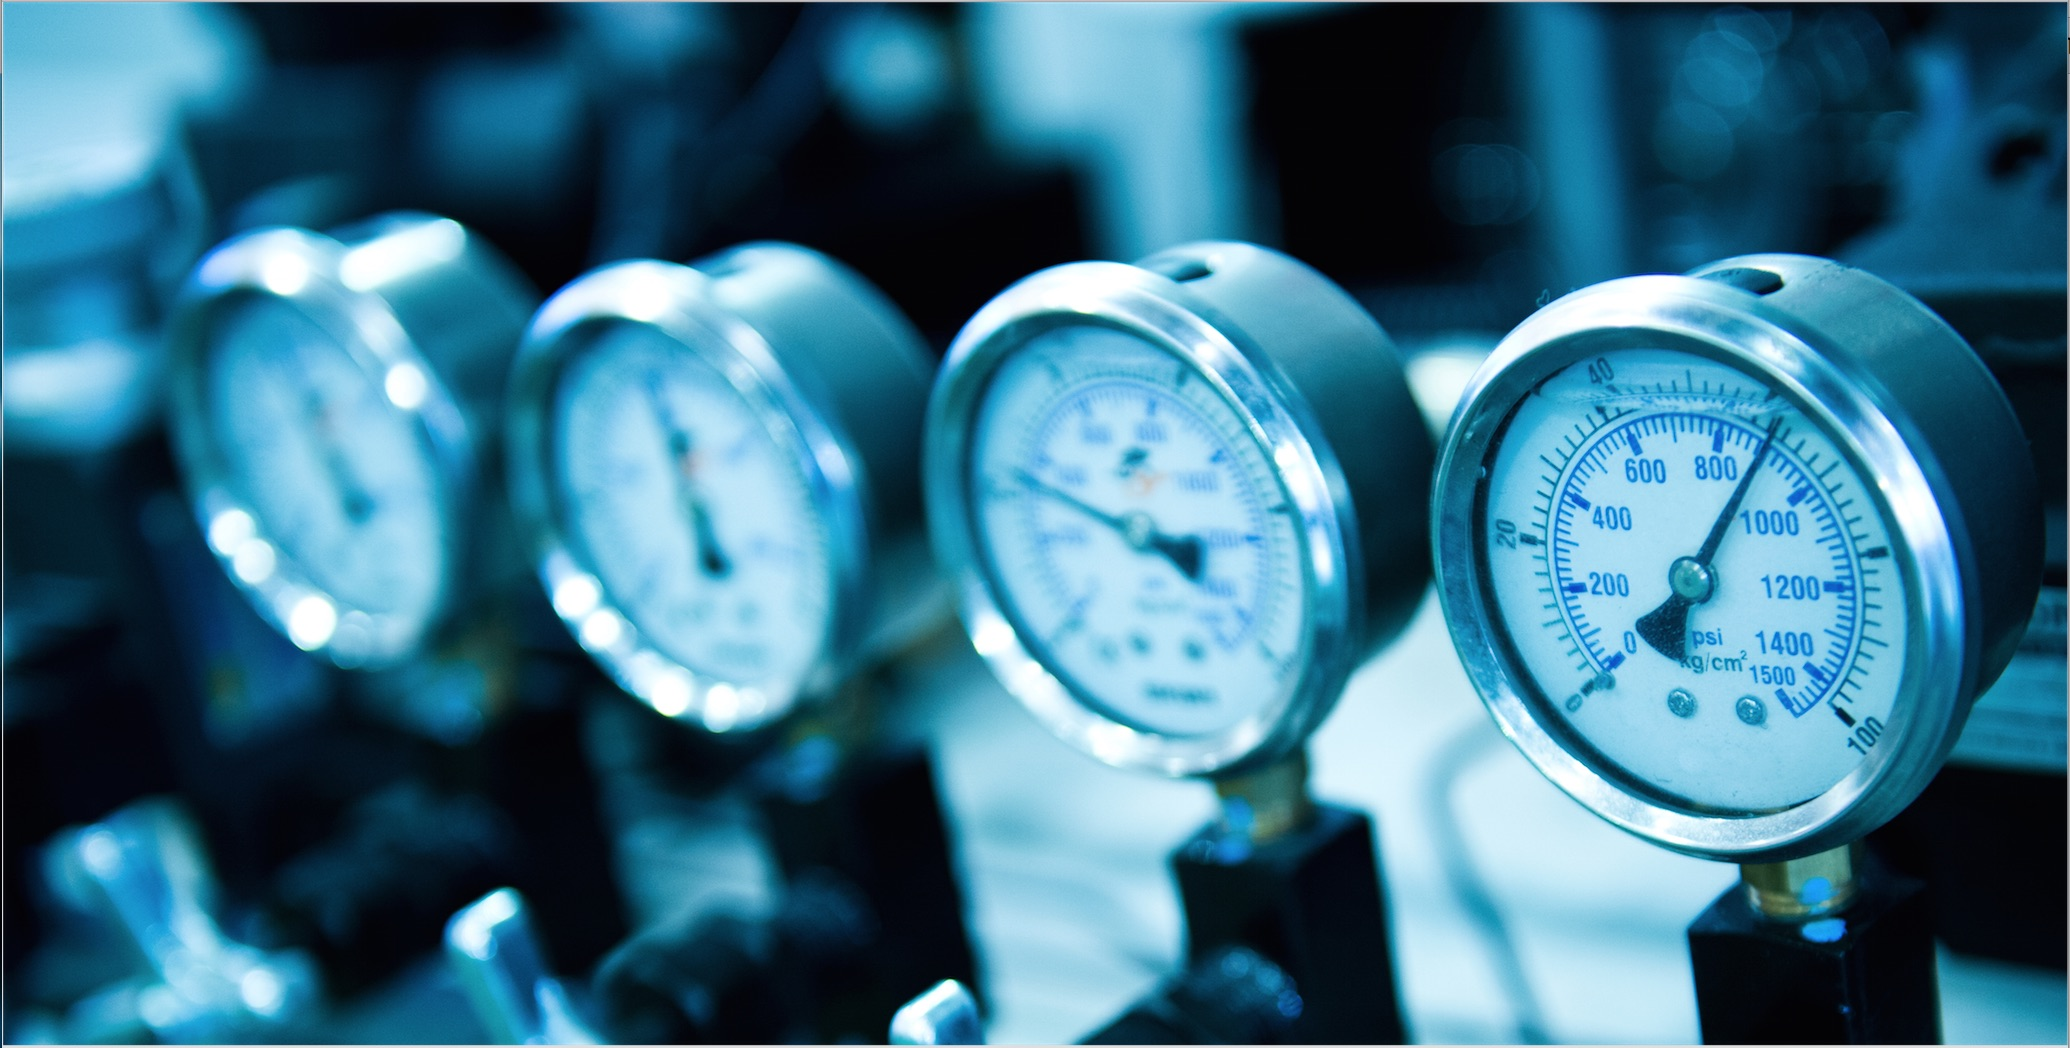 Instrumenting your data for real-time analysis and streaming